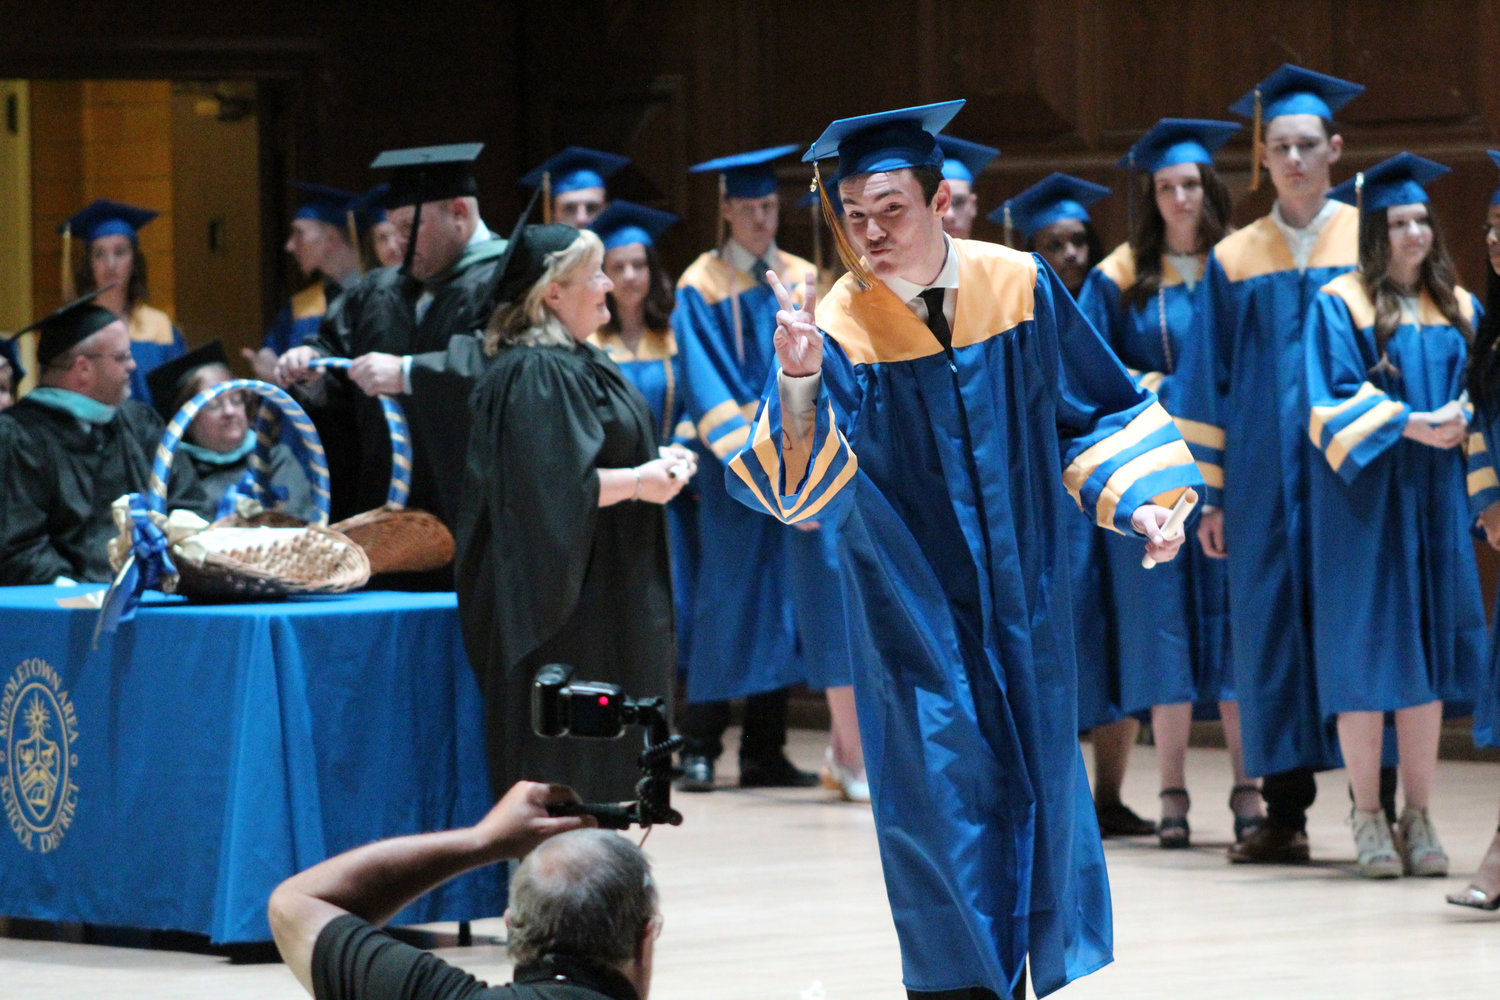 Christopher Reed poses for a photo during graduation on June 4.